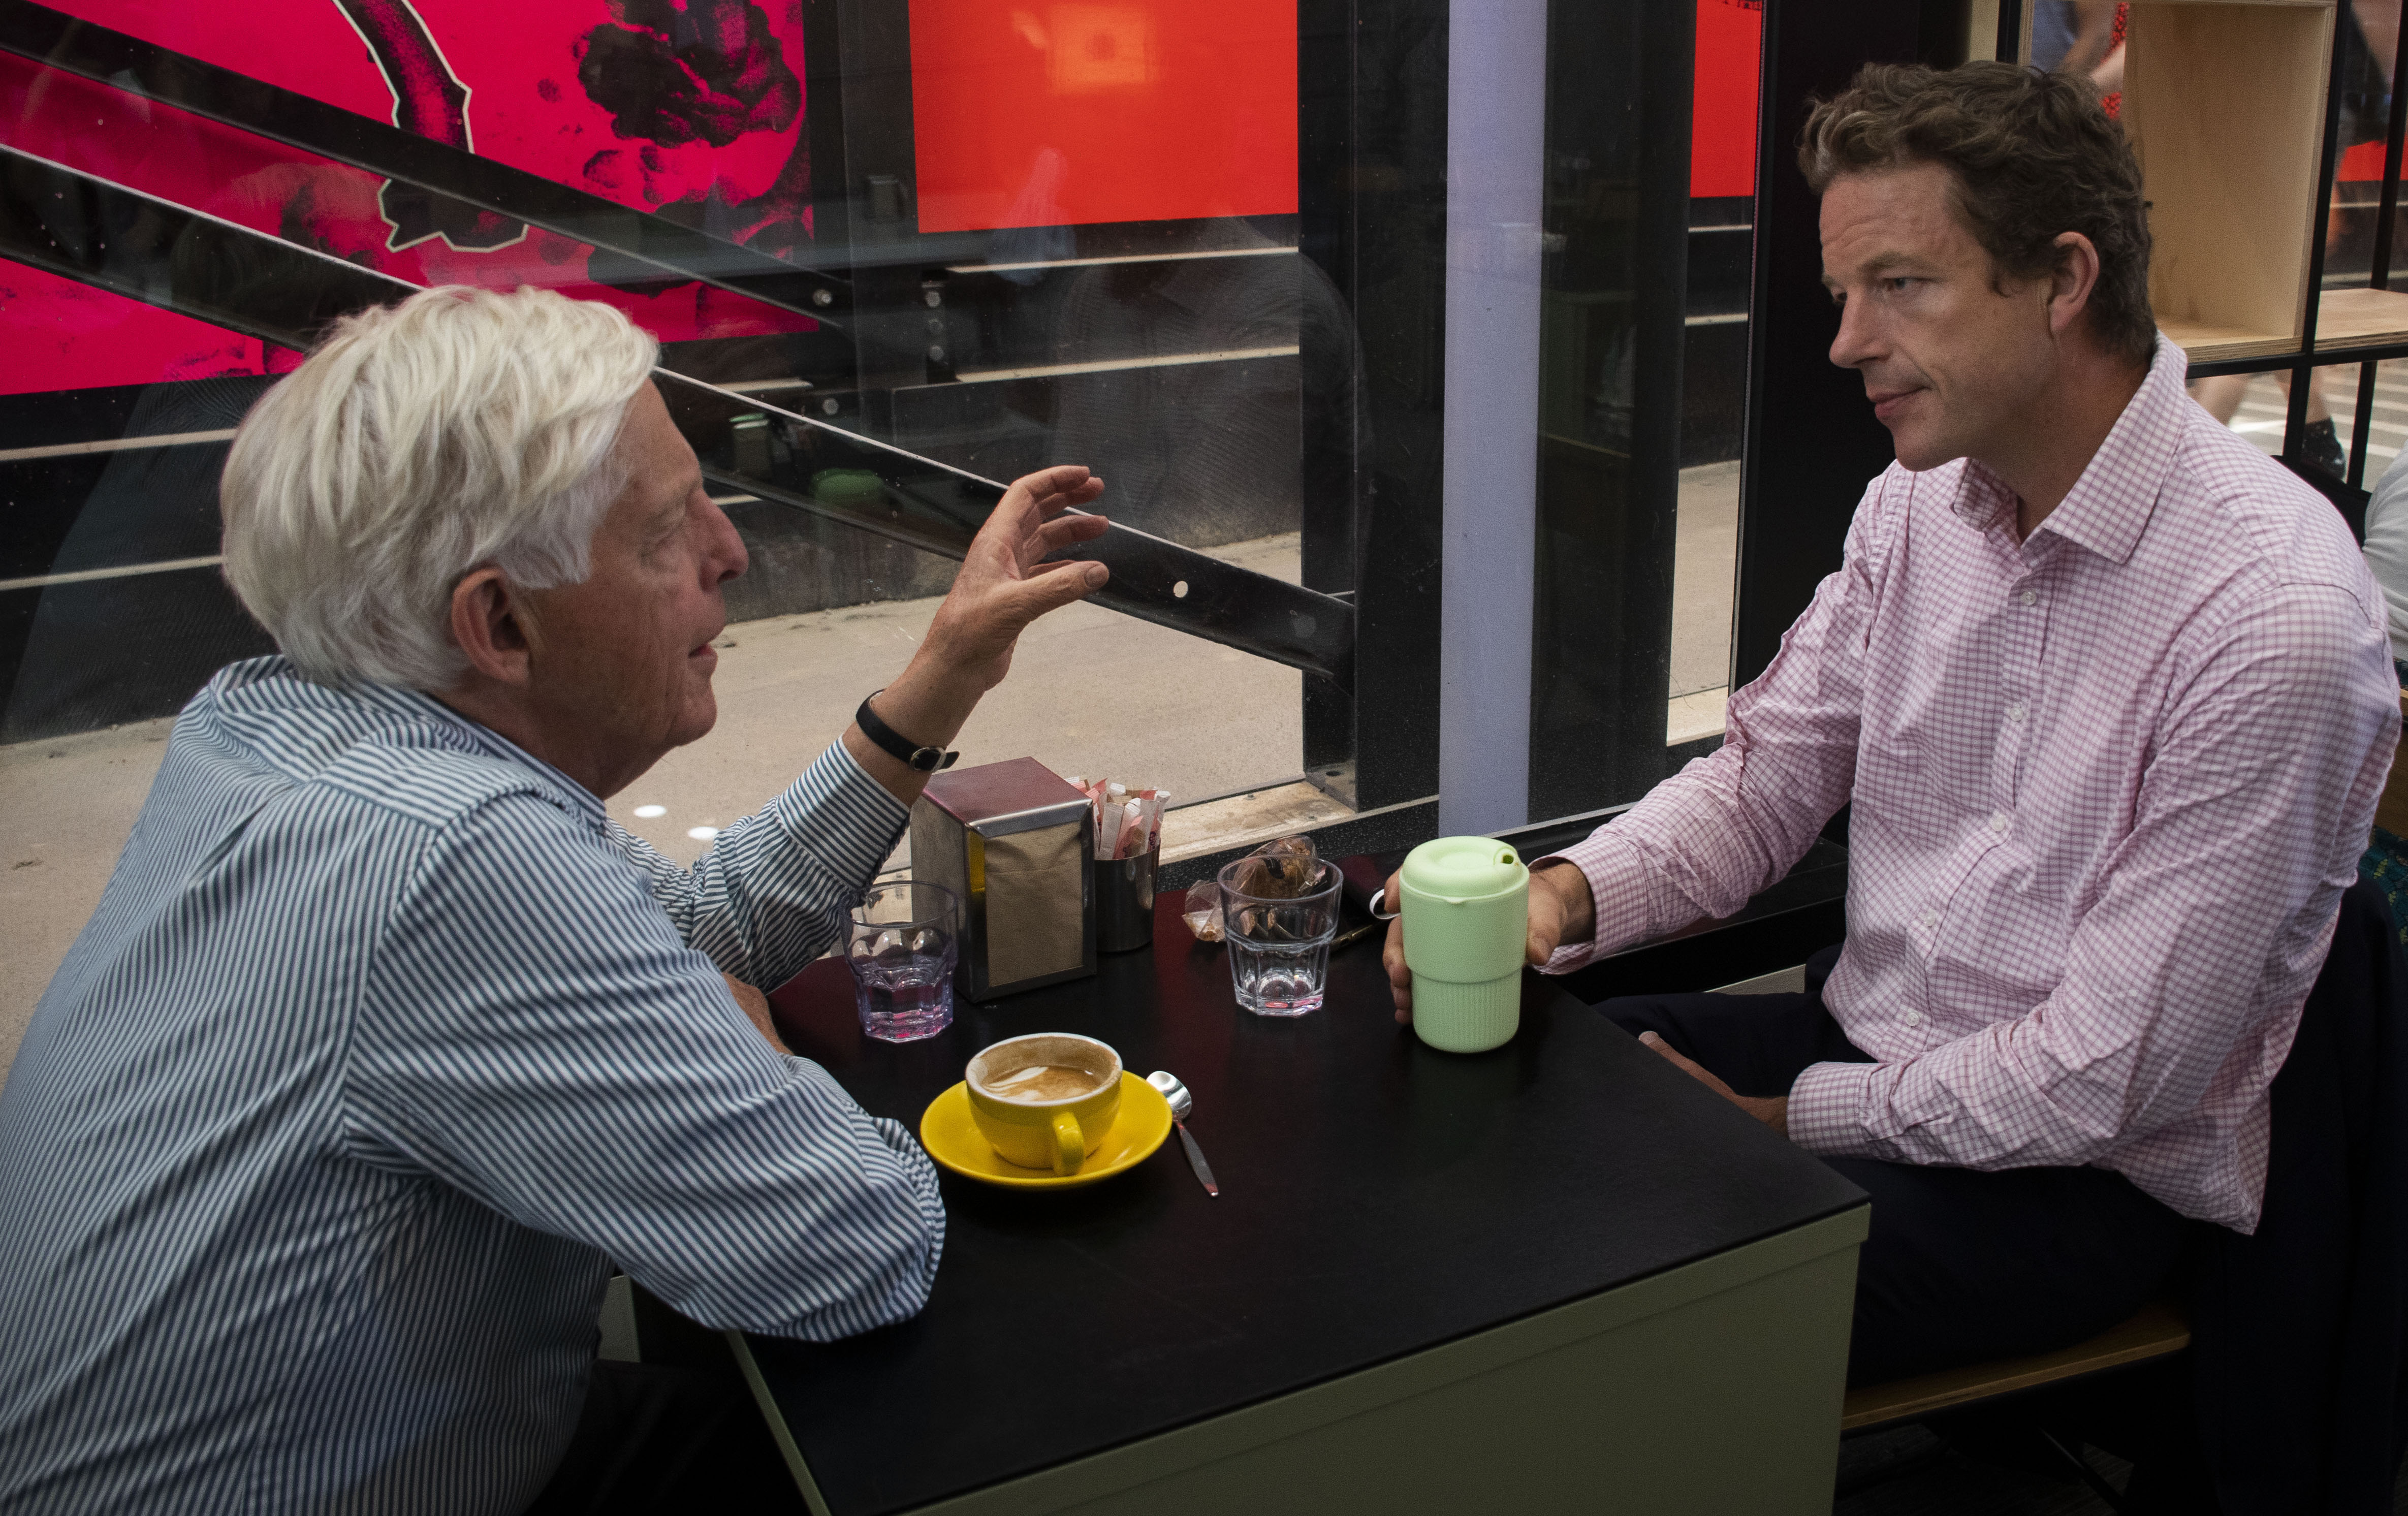 """Robin Jeffrey (left) and Craig Jeffrey (right) enjoy an afternoon coffee.  Craig says """"I probably have two cups of coffee each day, and I have been using the swap cup almost one year. I think it is really convenient for people, and very friendly to the environment""""."""